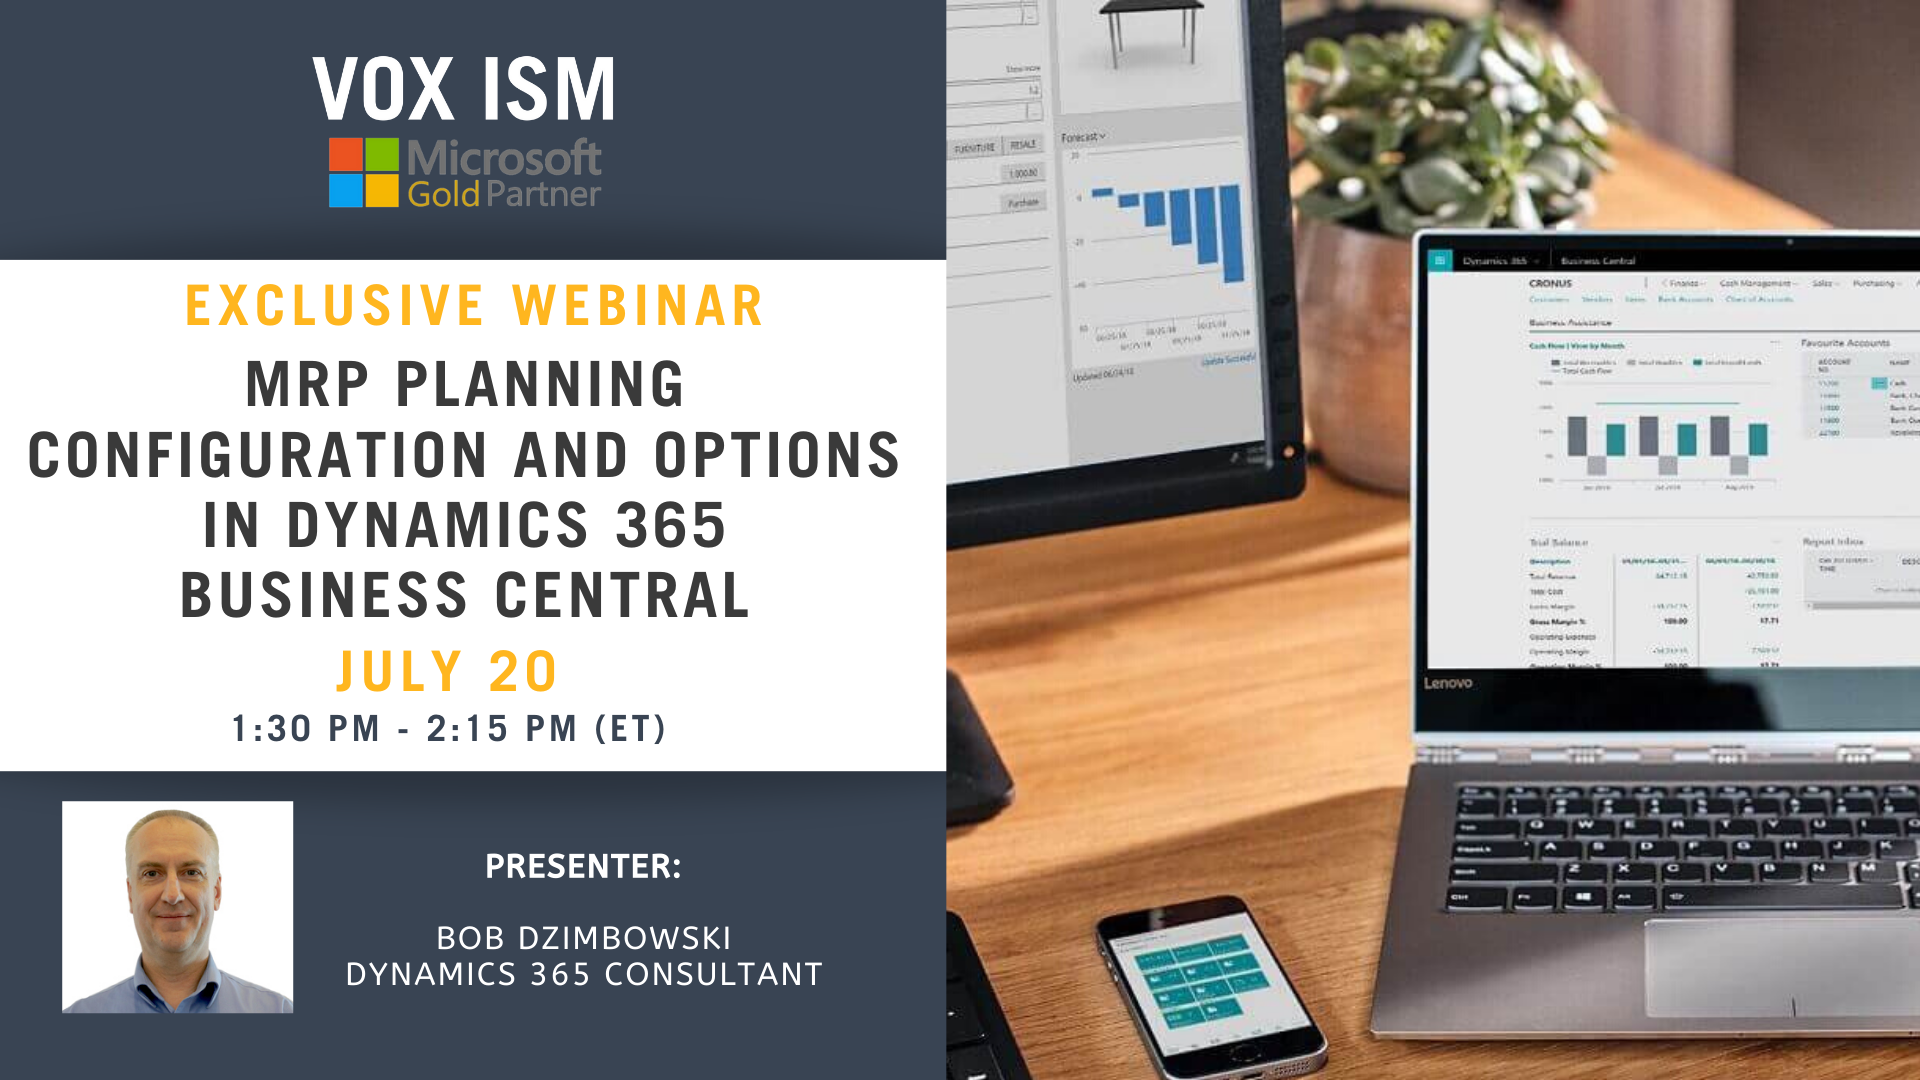 MRP Planning Configuration and Options in Business Central - July 20 - Webinar VOX ISM